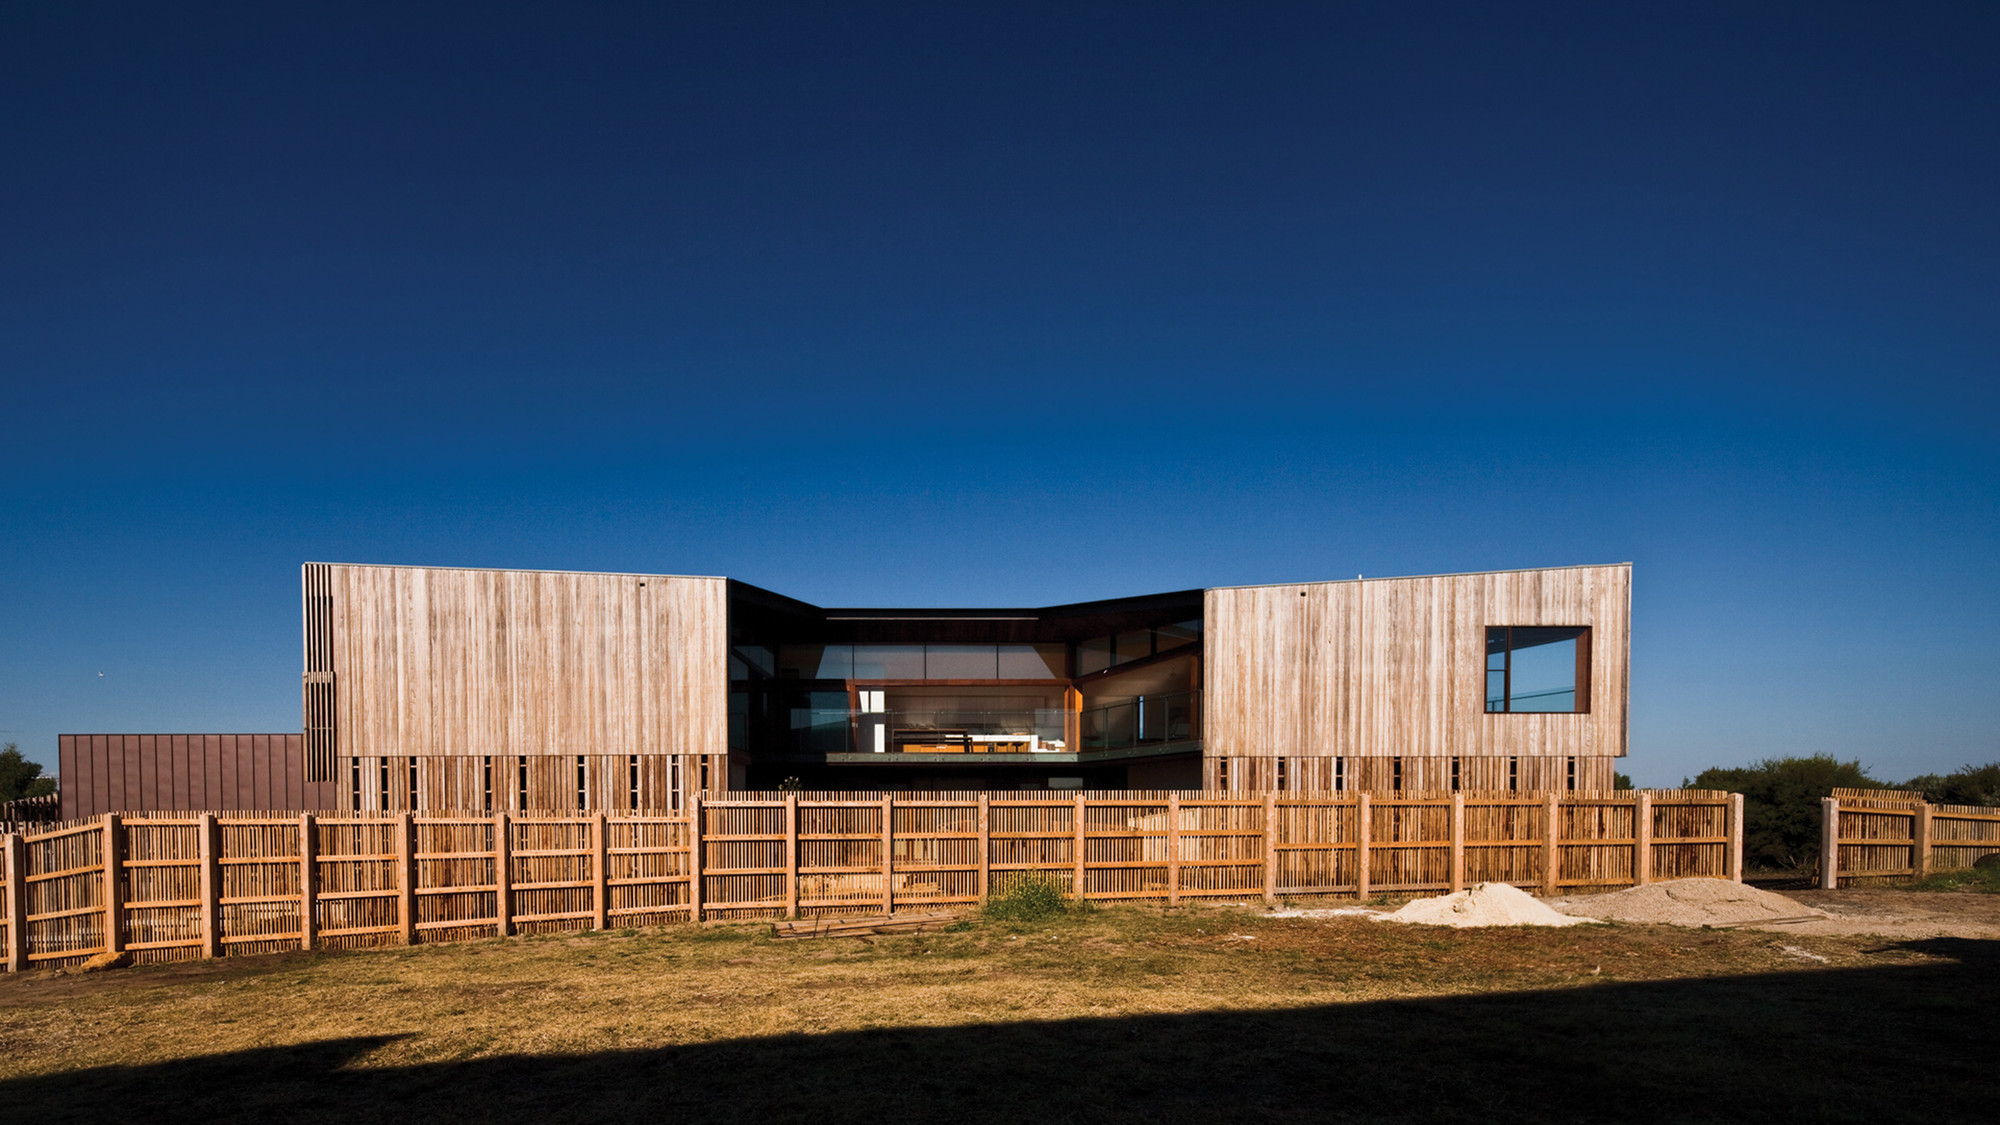 Queenscliff residence john wardle architects archdaily - Holzzaun modern ...